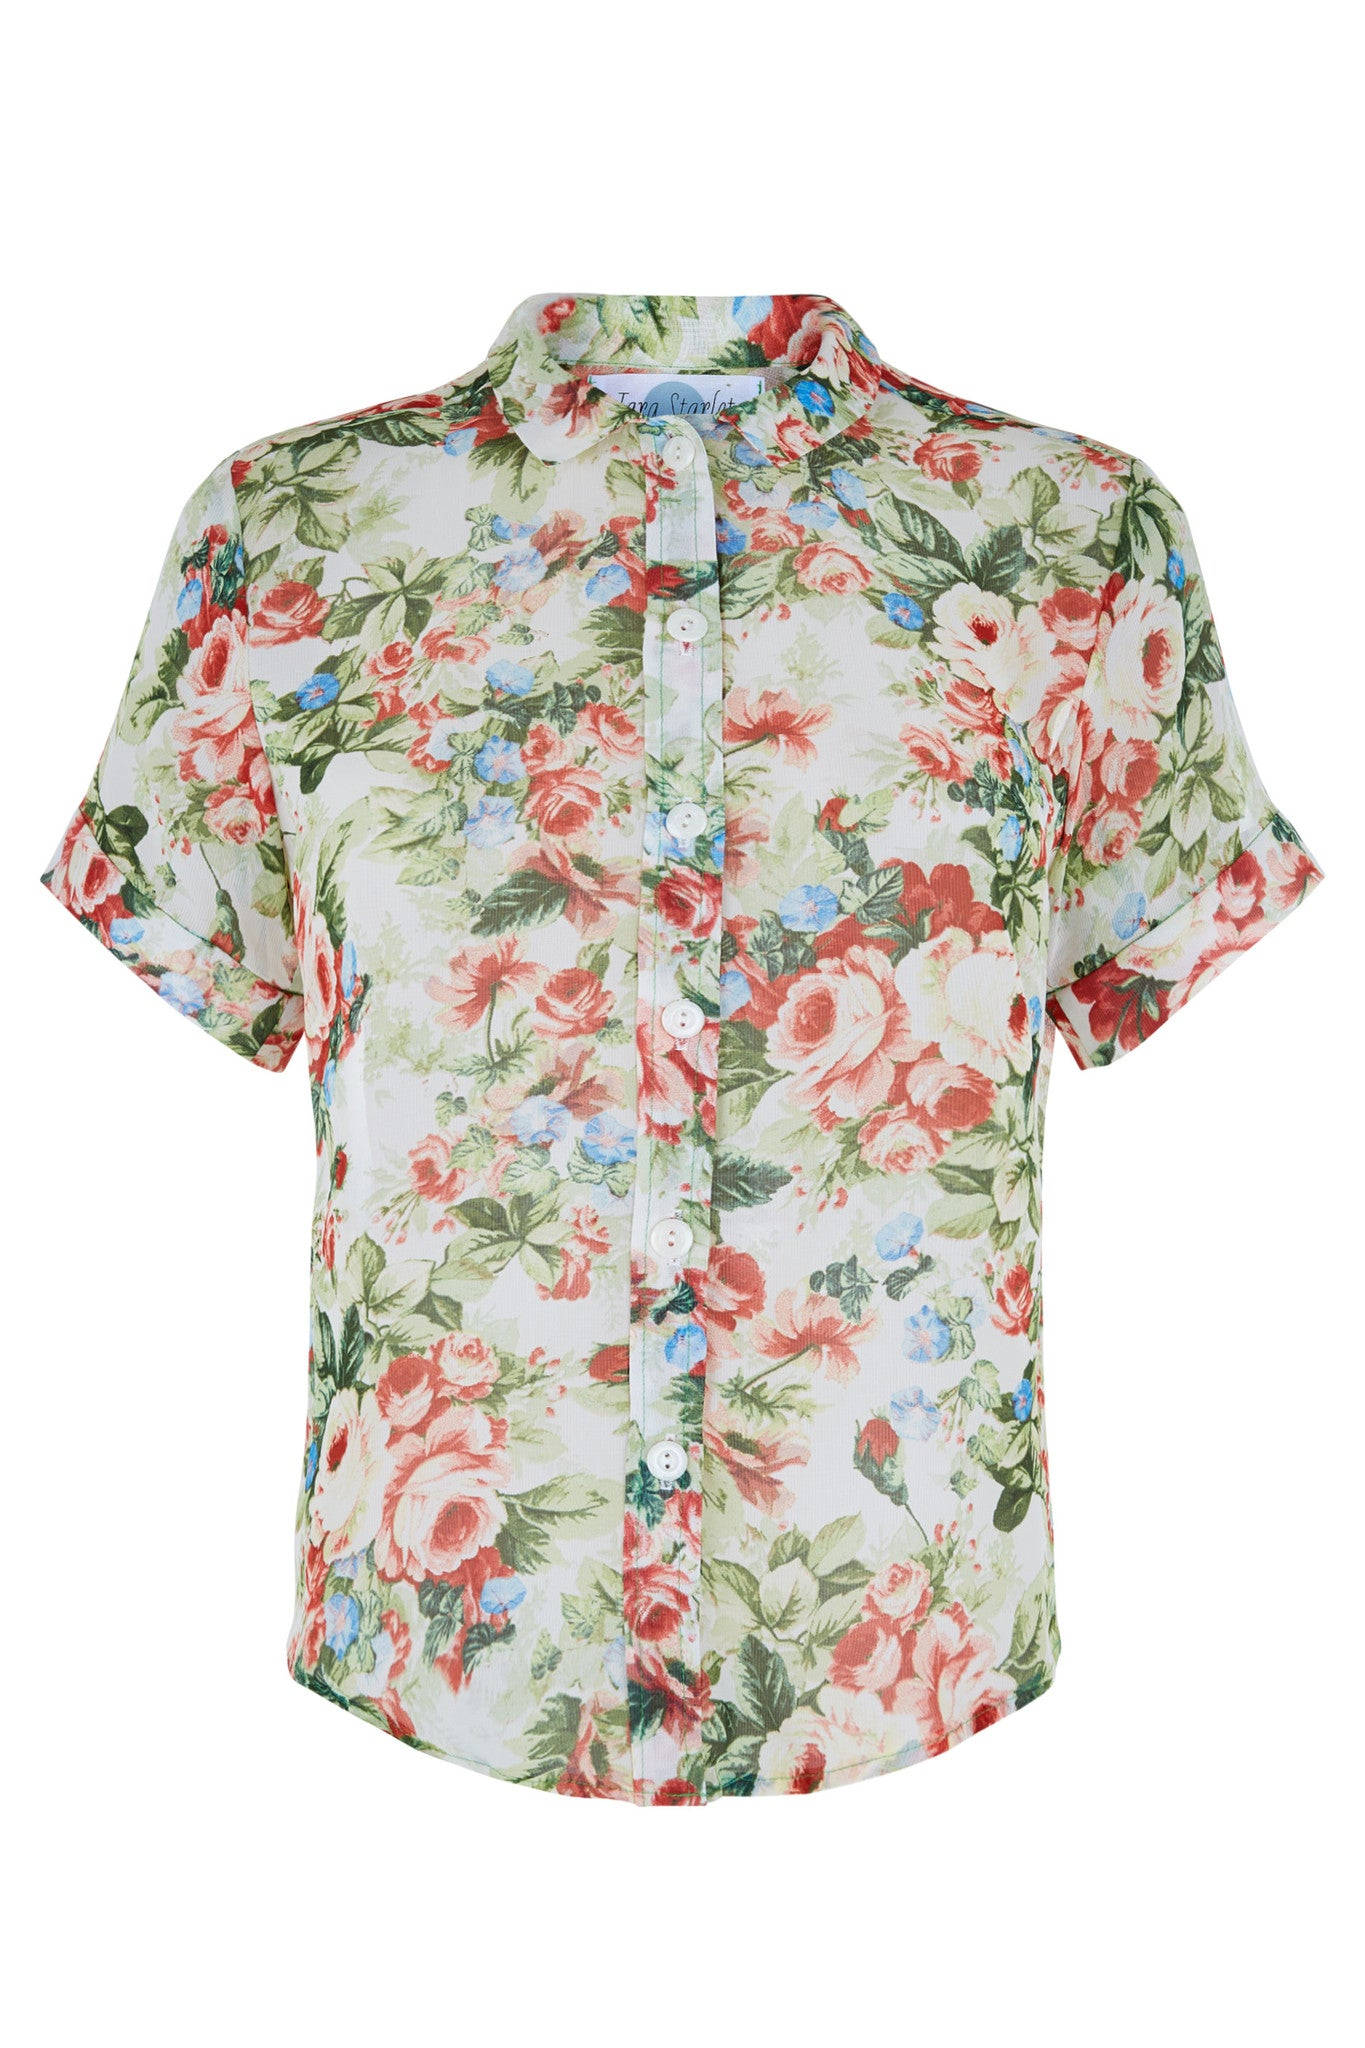 The Sheer Shirt - Green Floral